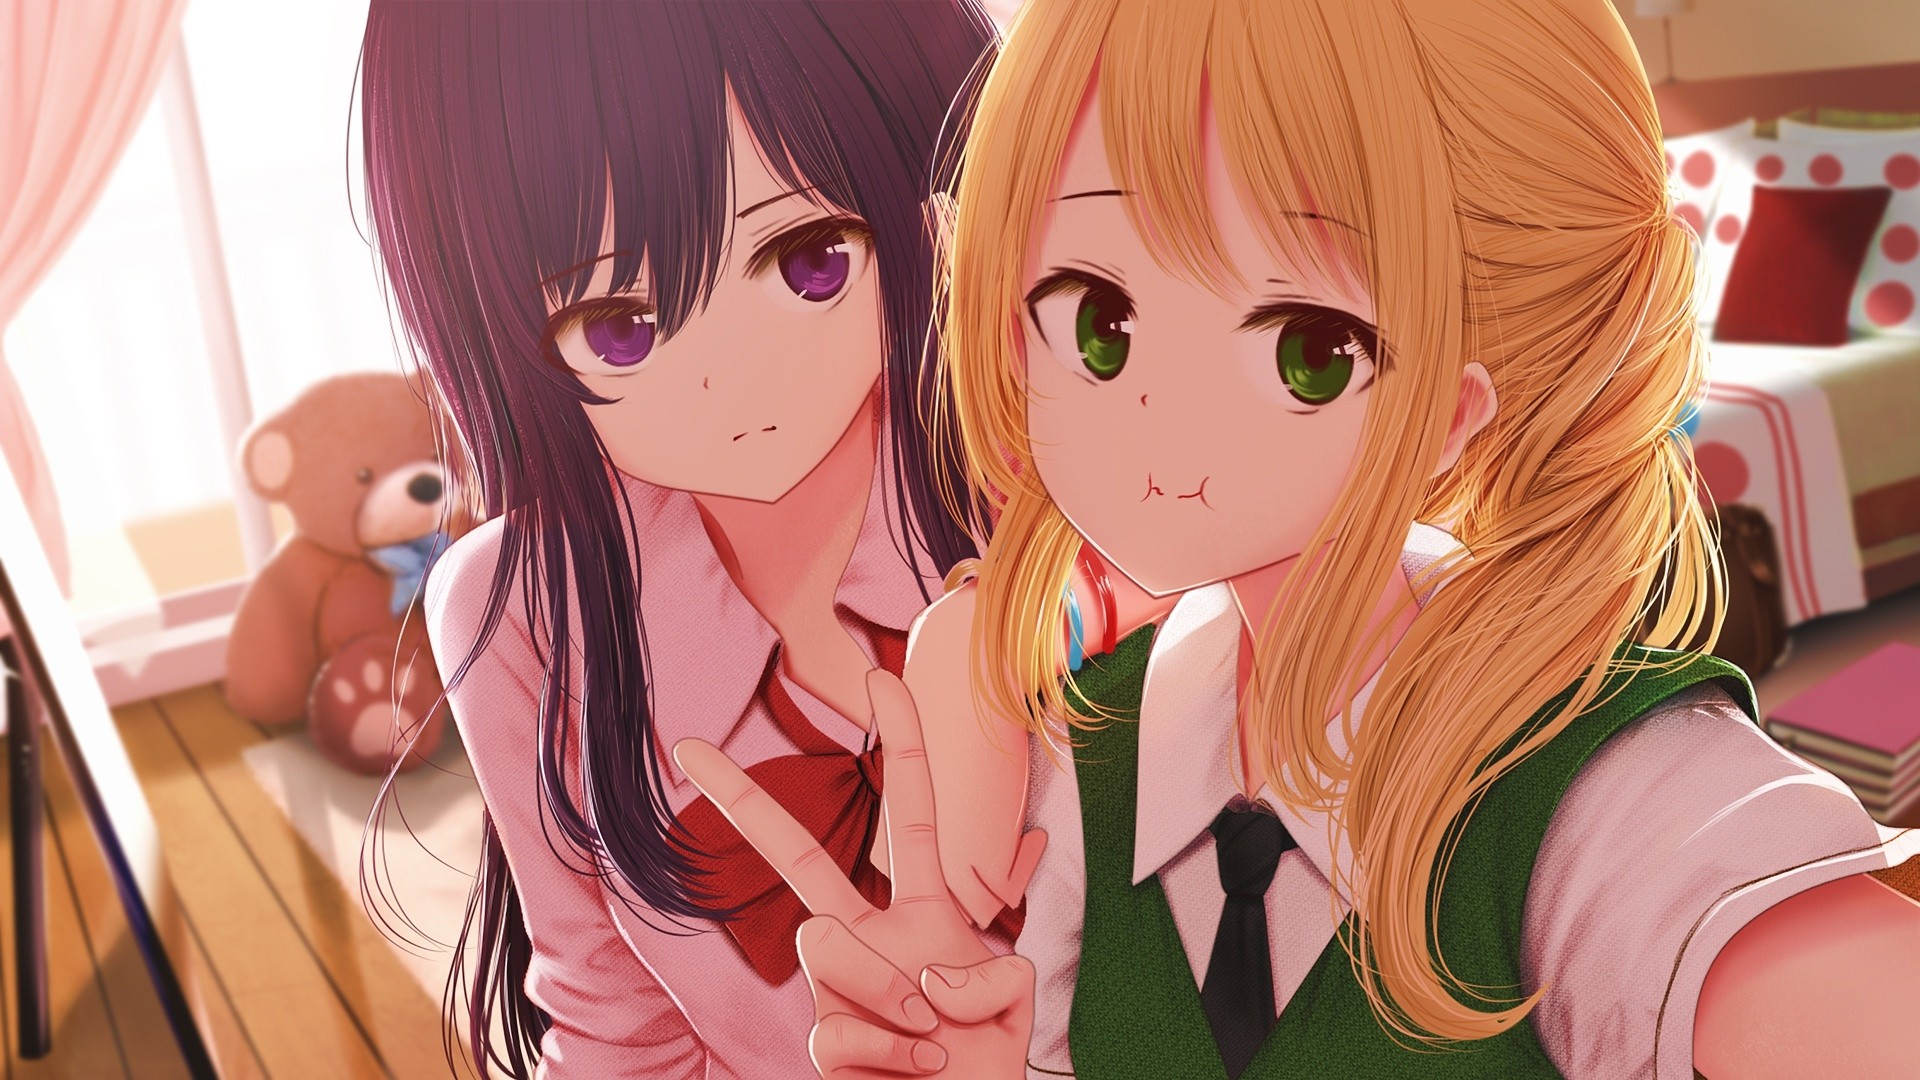 Citrus Anime Free Wallpaper and Background